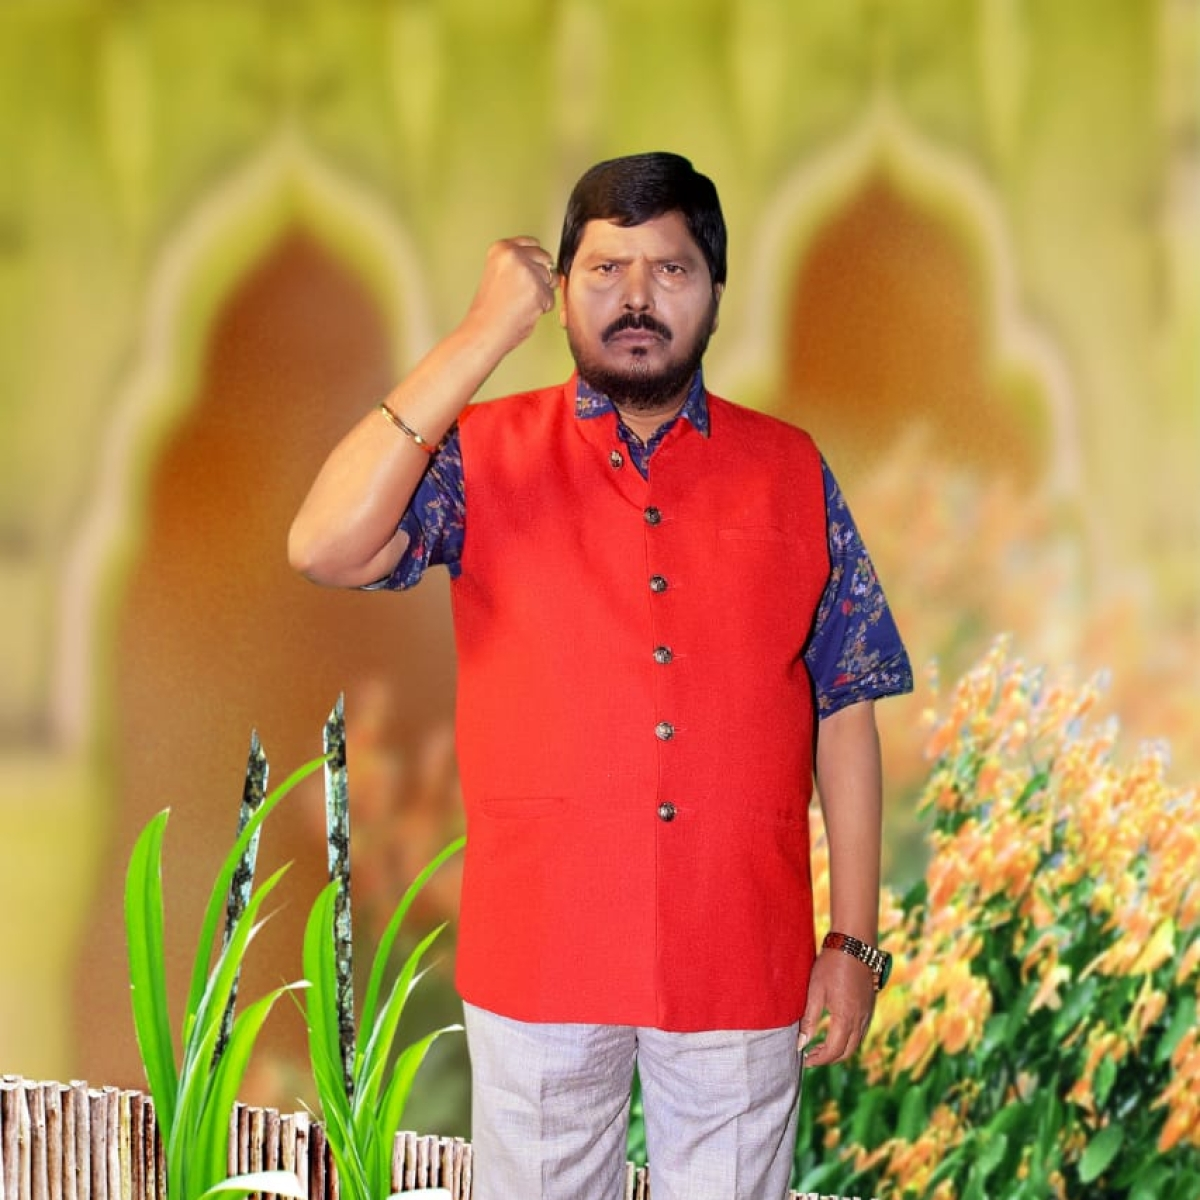 'Ban Chinese food and hotels in India': Ramdas Athawale's 'suggestion' after violent face-off in Galwan Valley